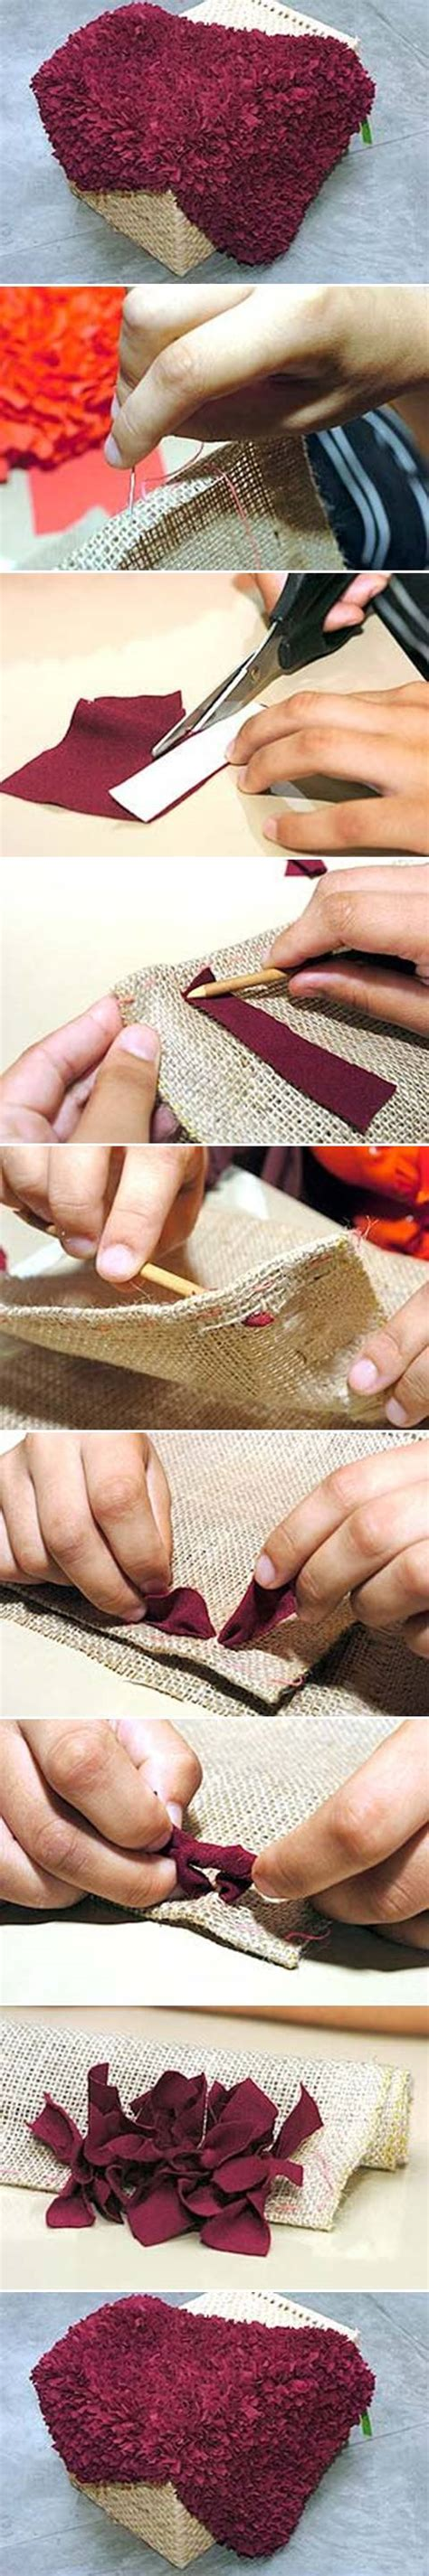 how to make a rug from fabric 3 easy tutorials will teach you how to make a rug at home